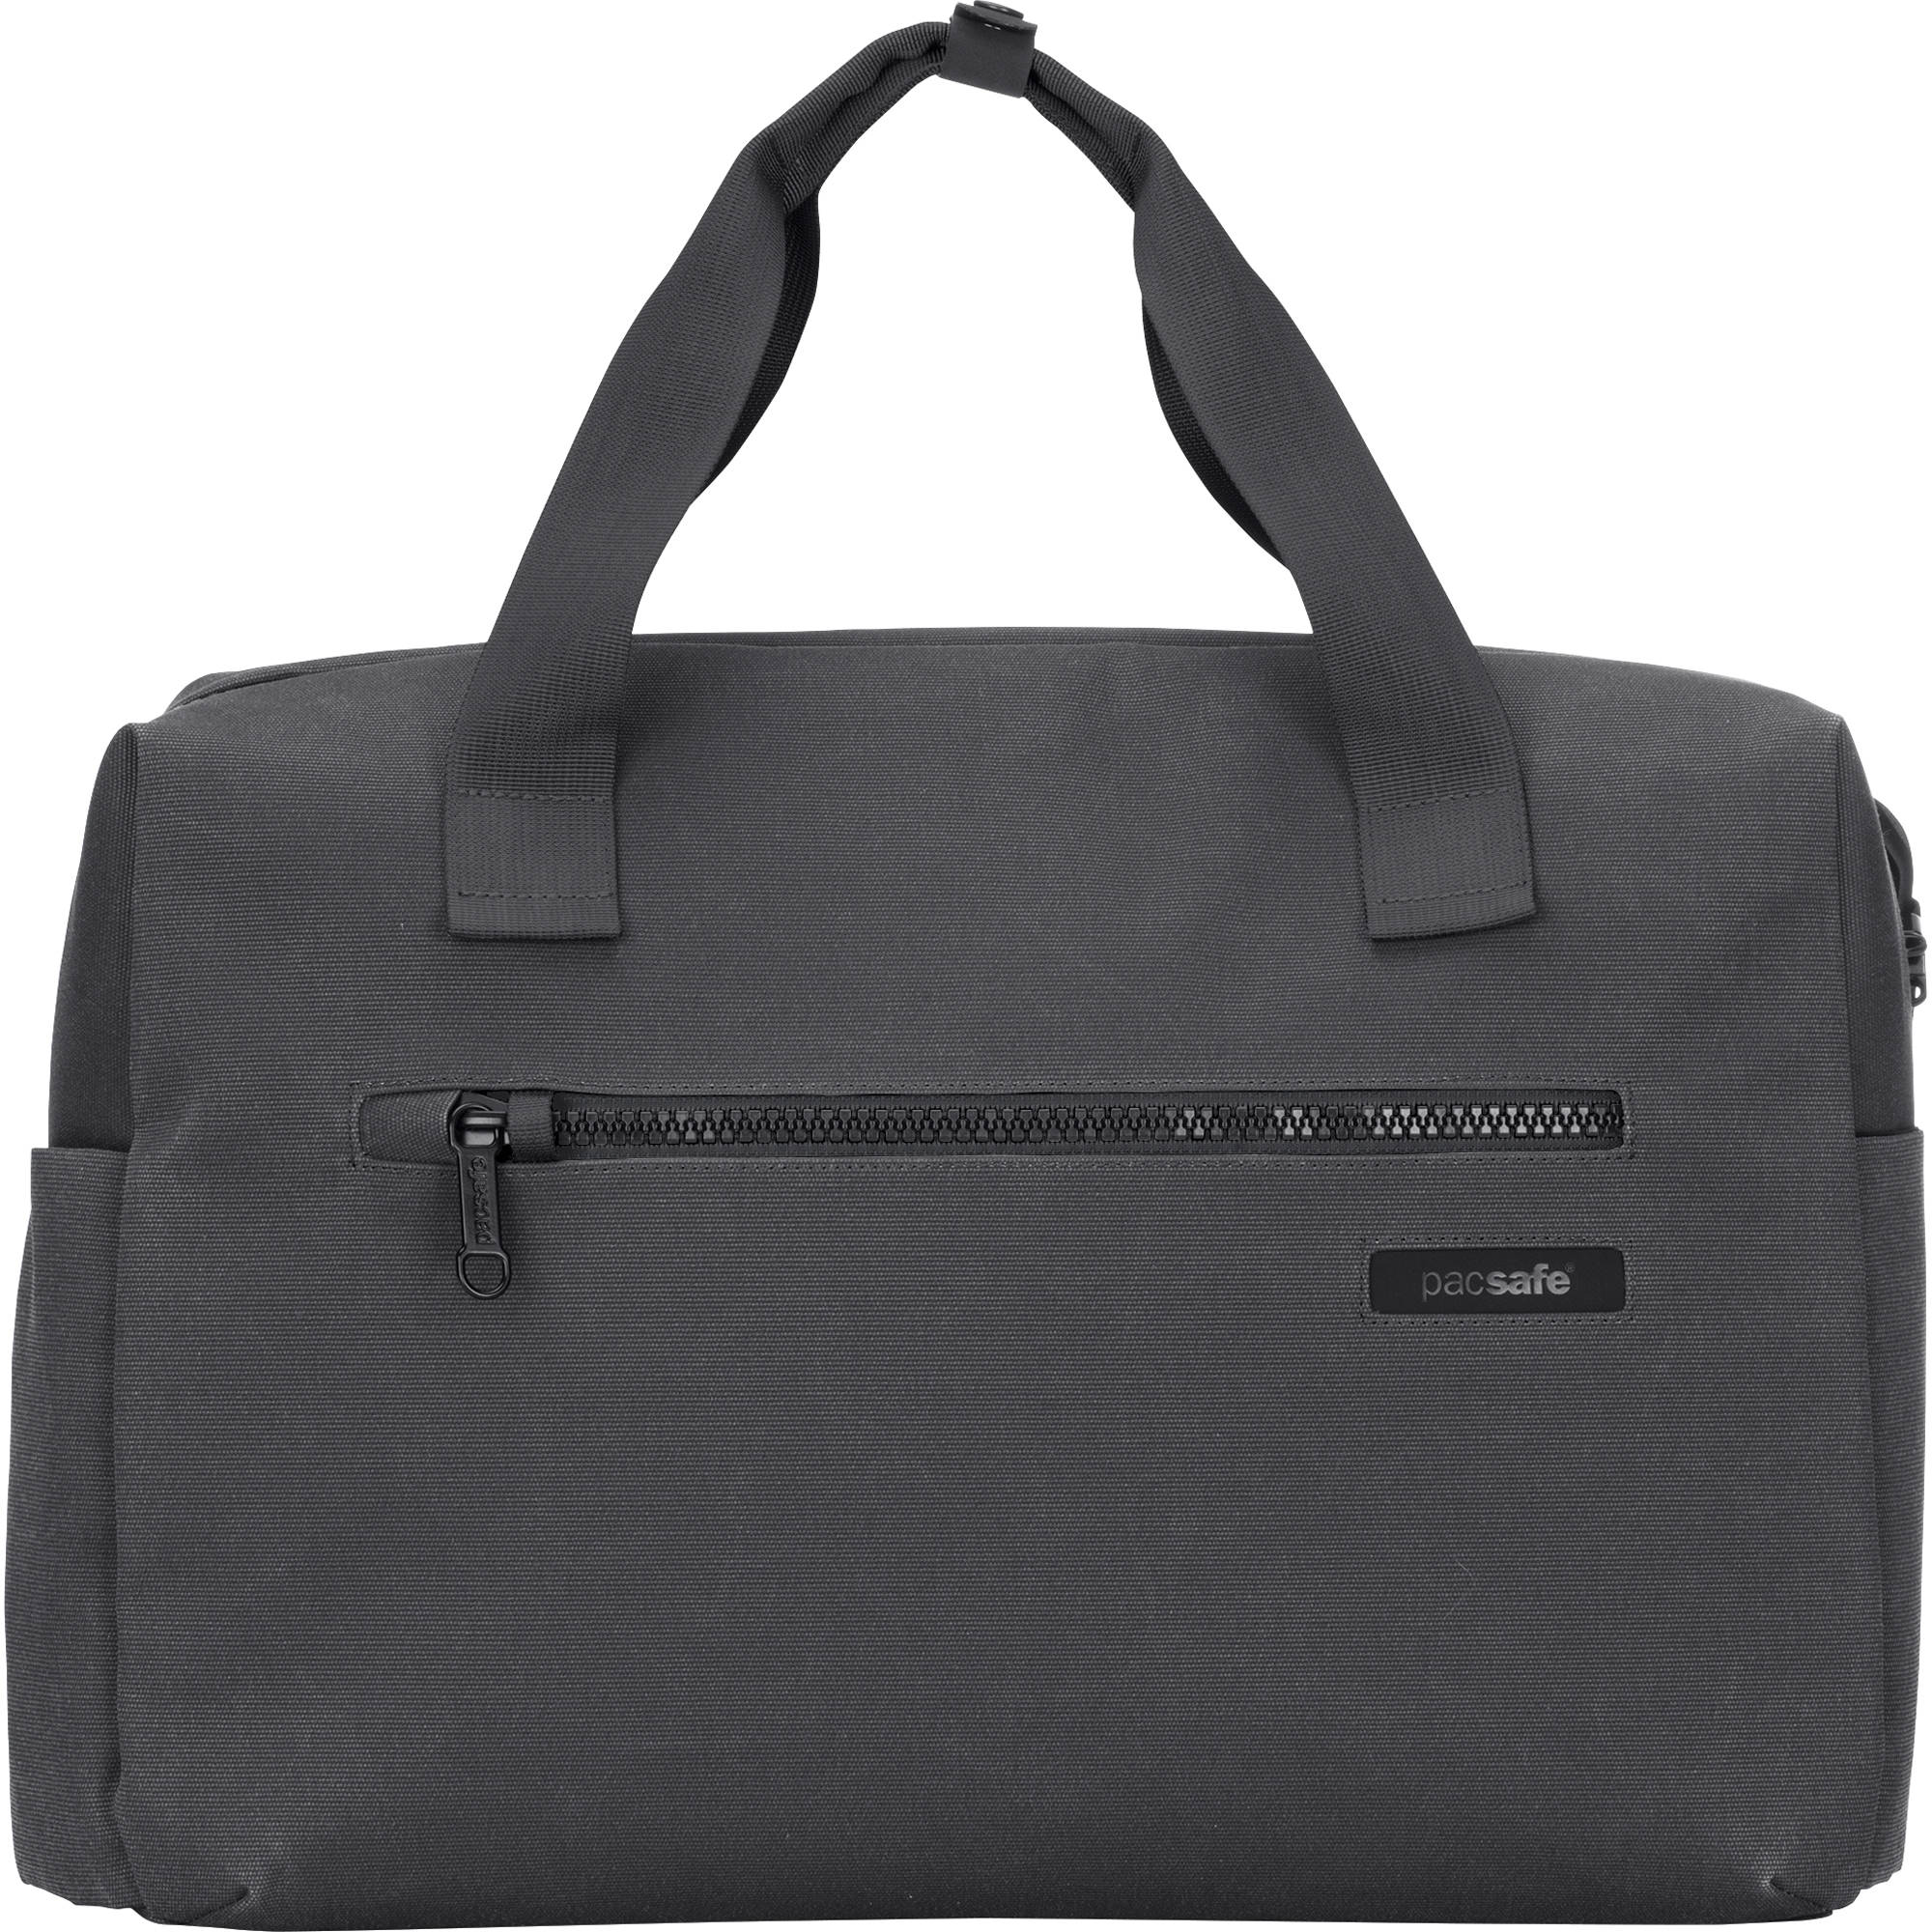 Pacsafe Intasafe Brief Anti Theft Bag For 15 25161104 Bh Notebook Protector Laptop Charcoal